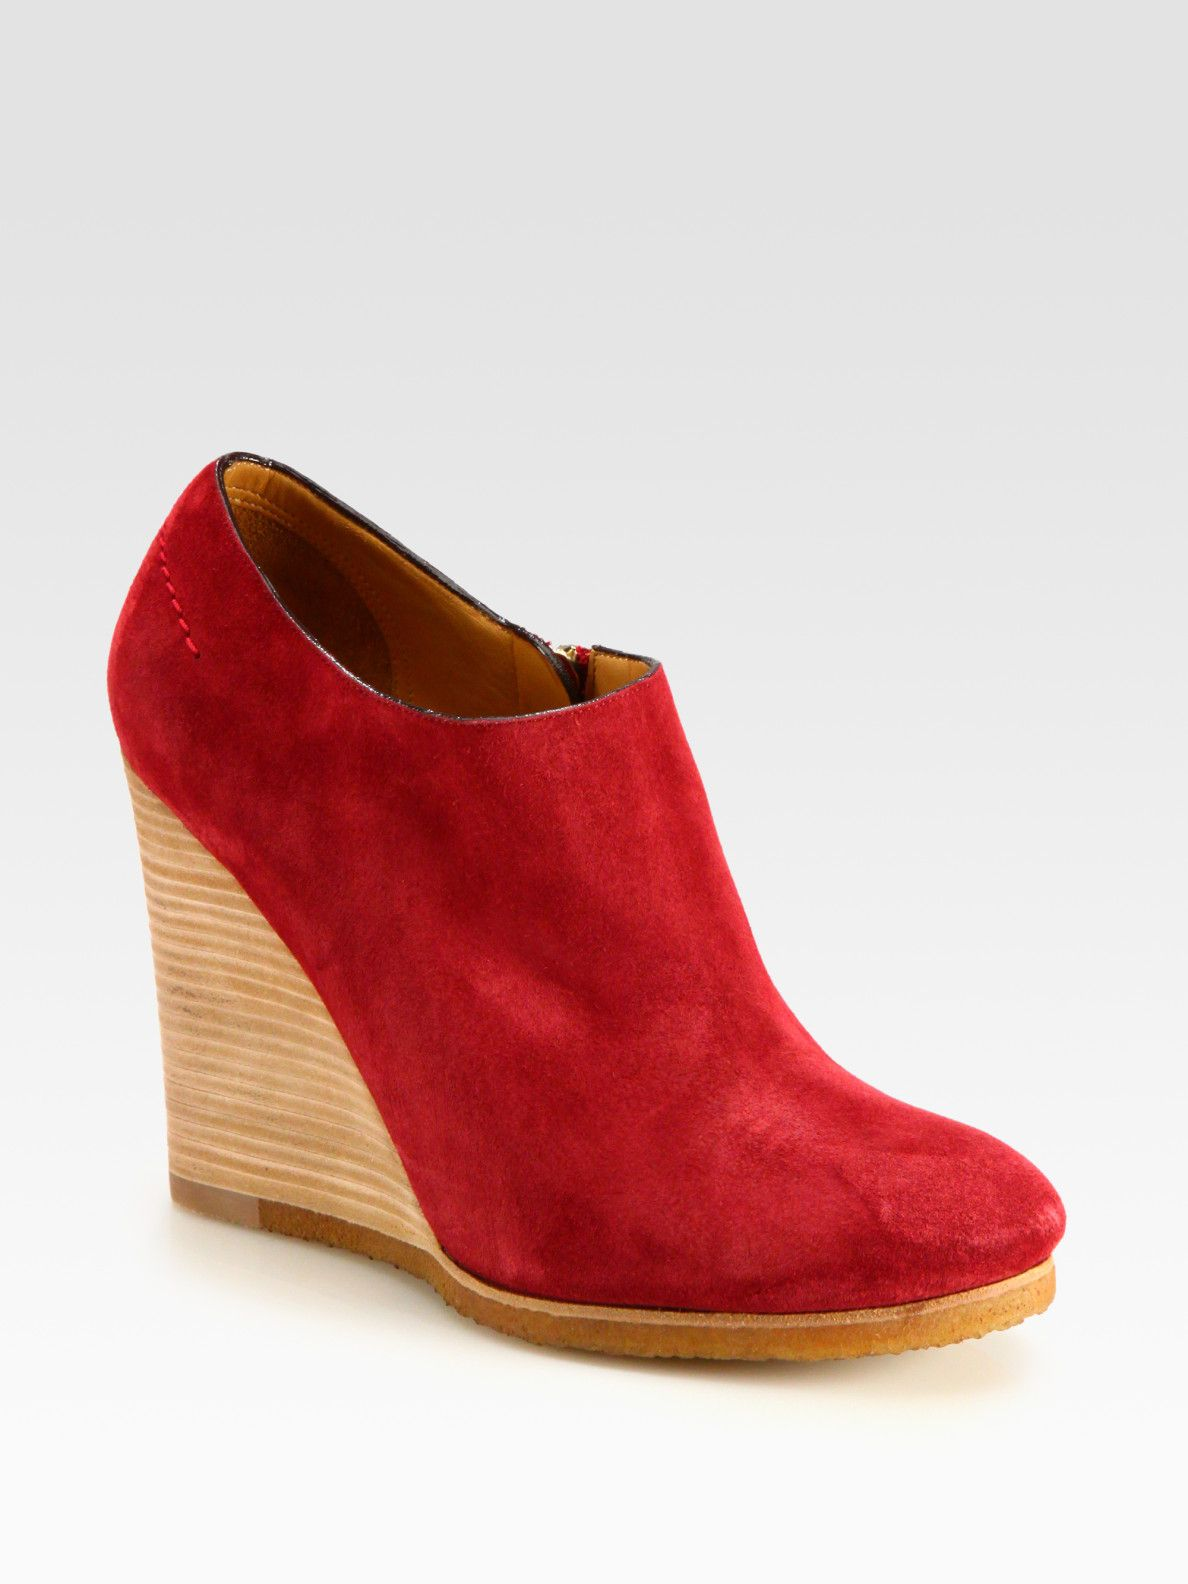 acadc3a8374 Chloé Suede Wedge Ankle Boots in Red (sangria) | Lyst | Shoes Shoes ...